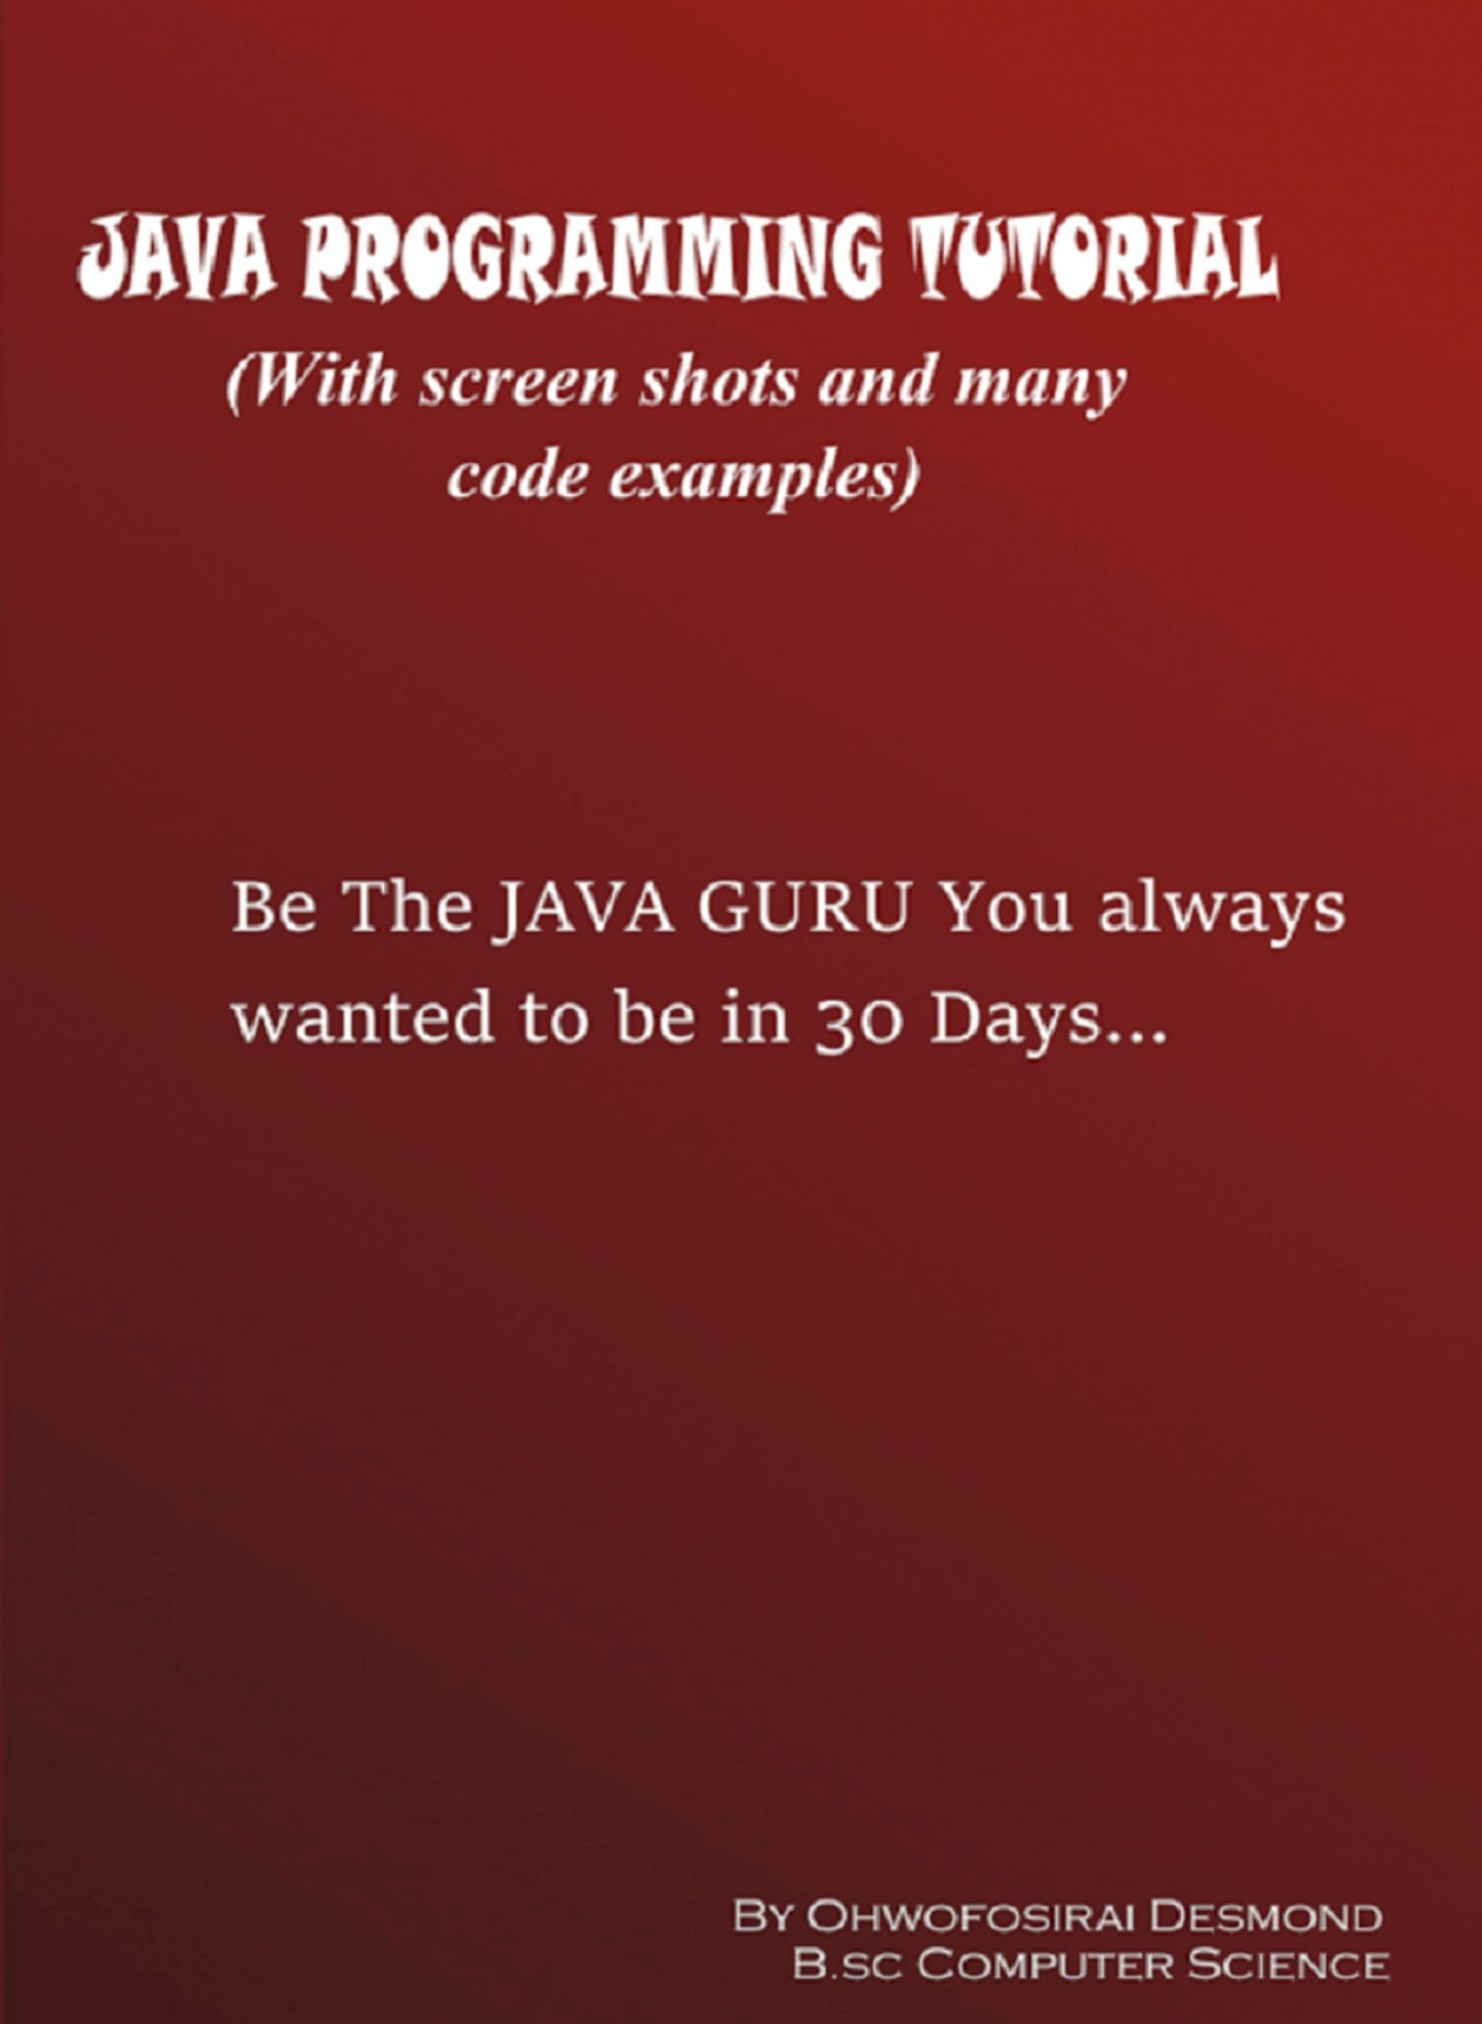 Programming Tutorial Java Programming Tutorial With Screen Shots And Many Code Examples An Ebook By Ohwofosirai Desmond